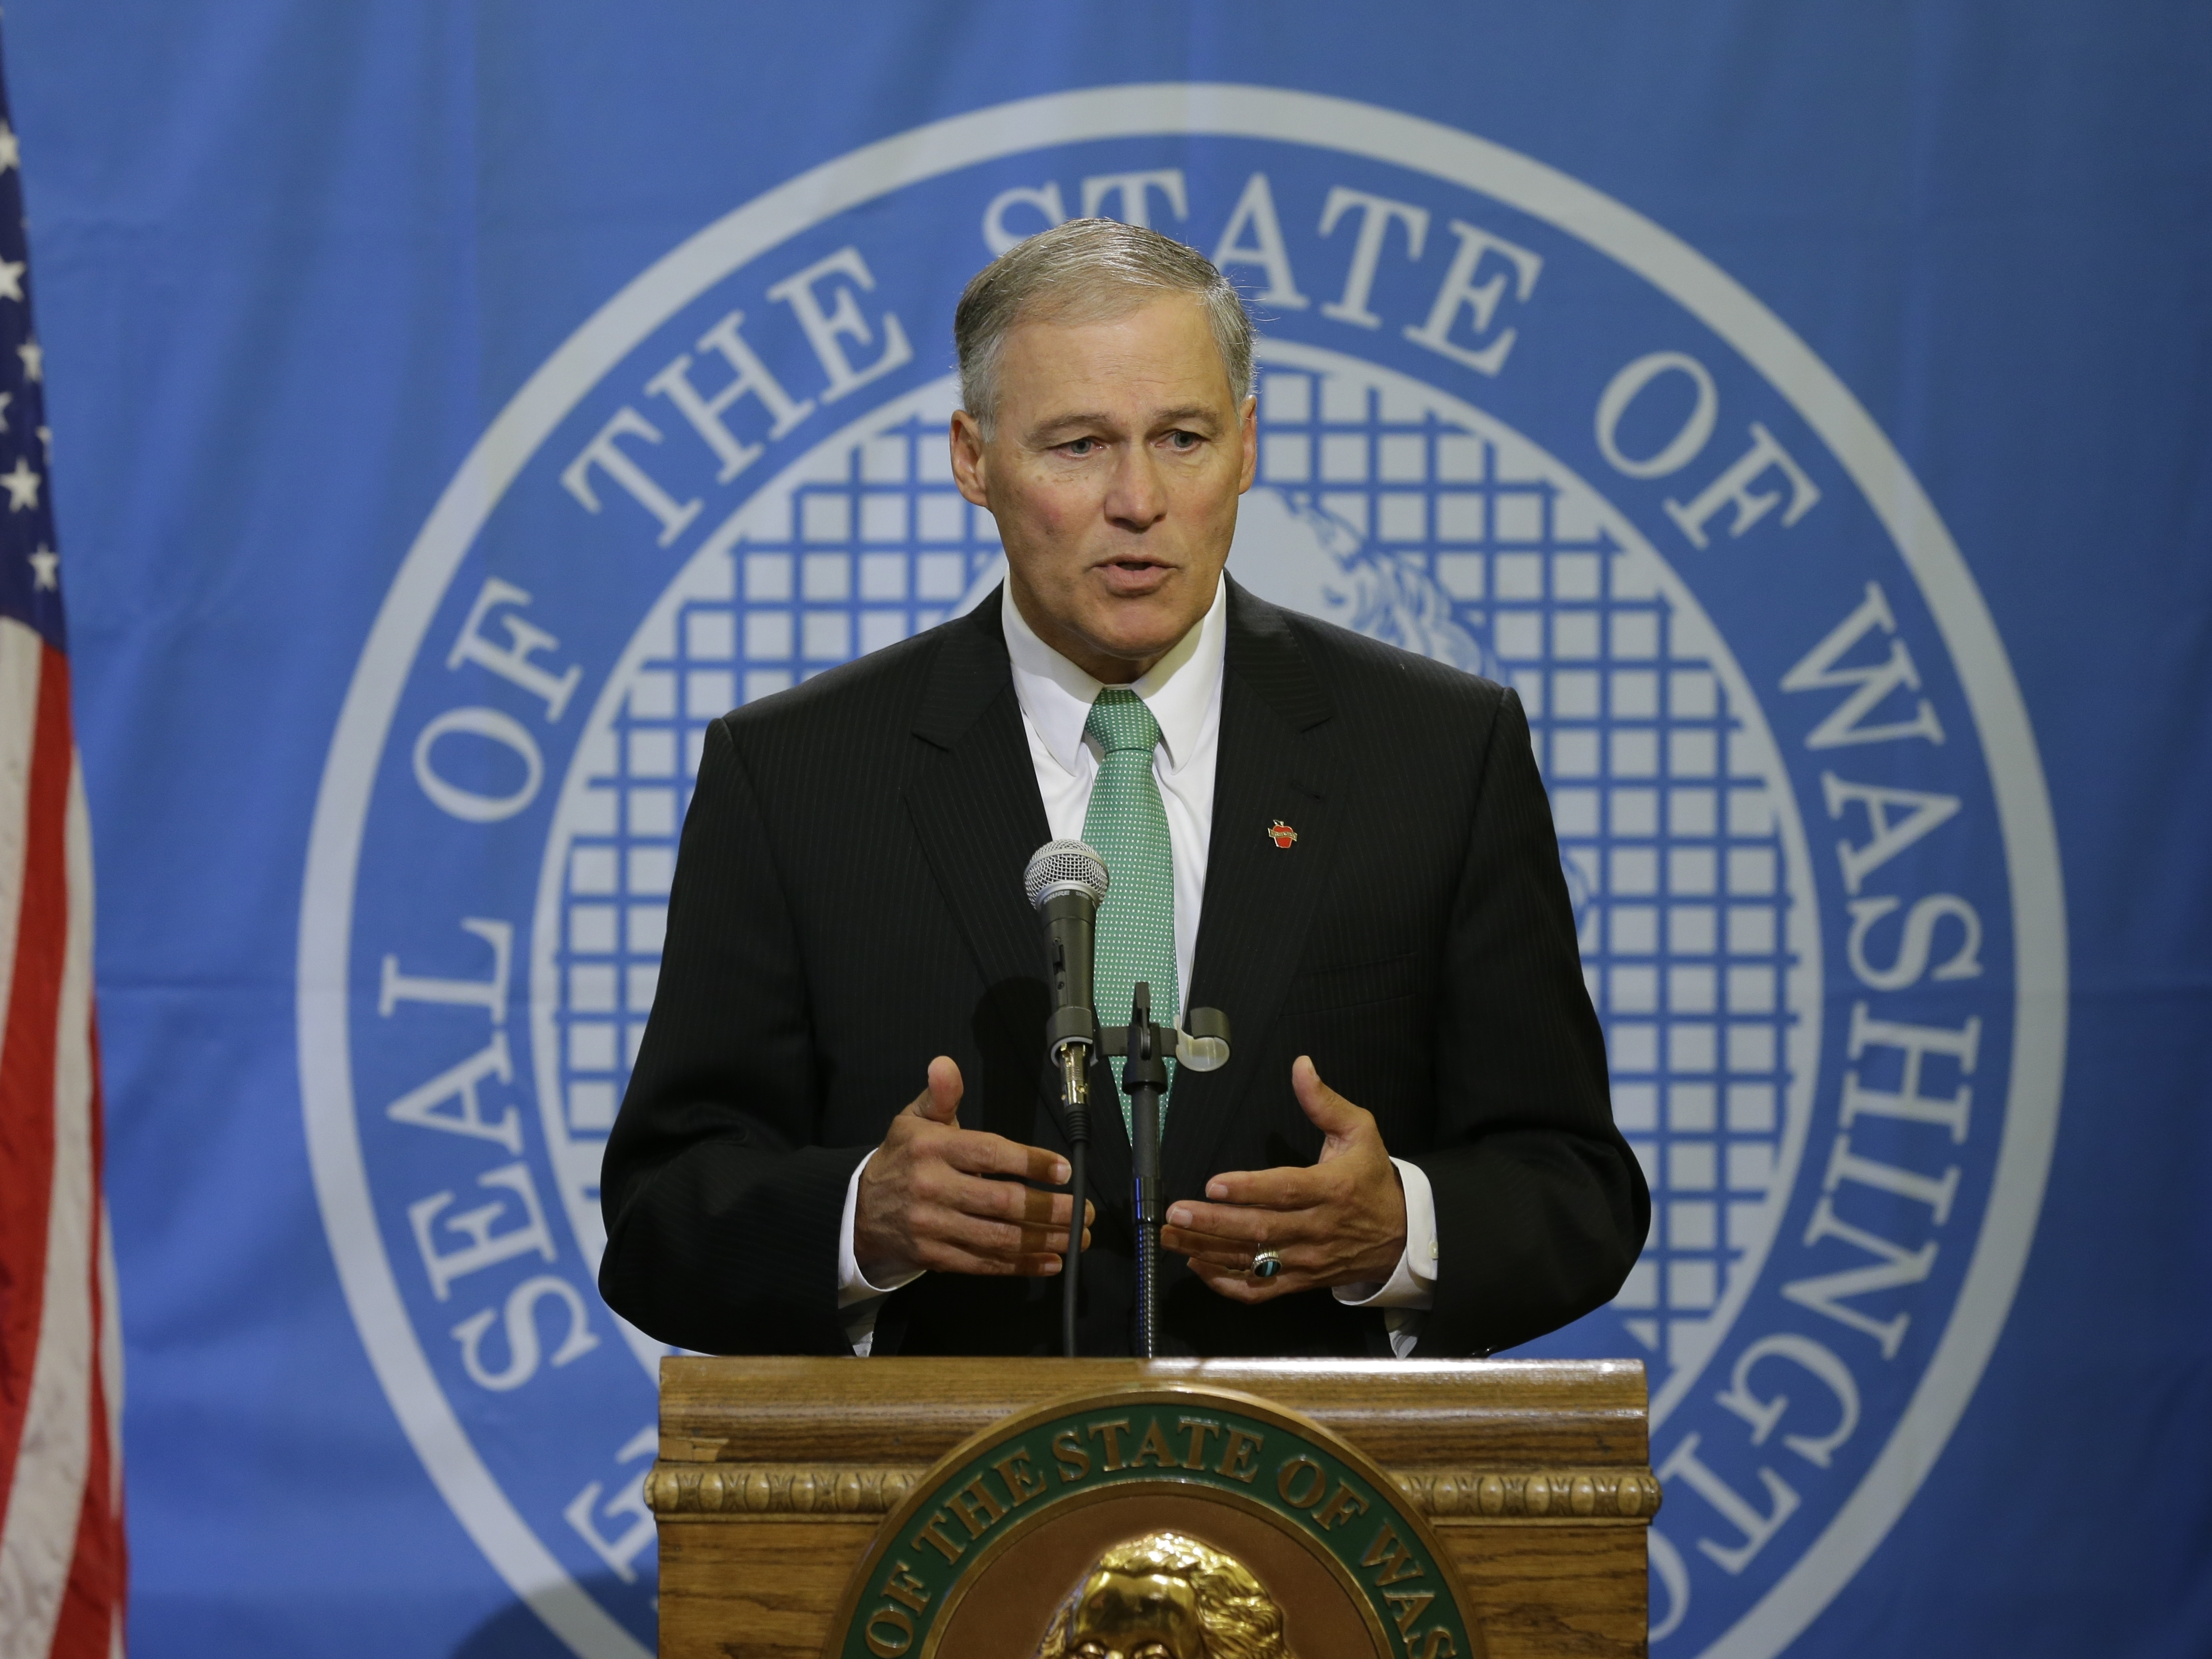 Washington State Governor Says He Welcomes Syrian Refugees